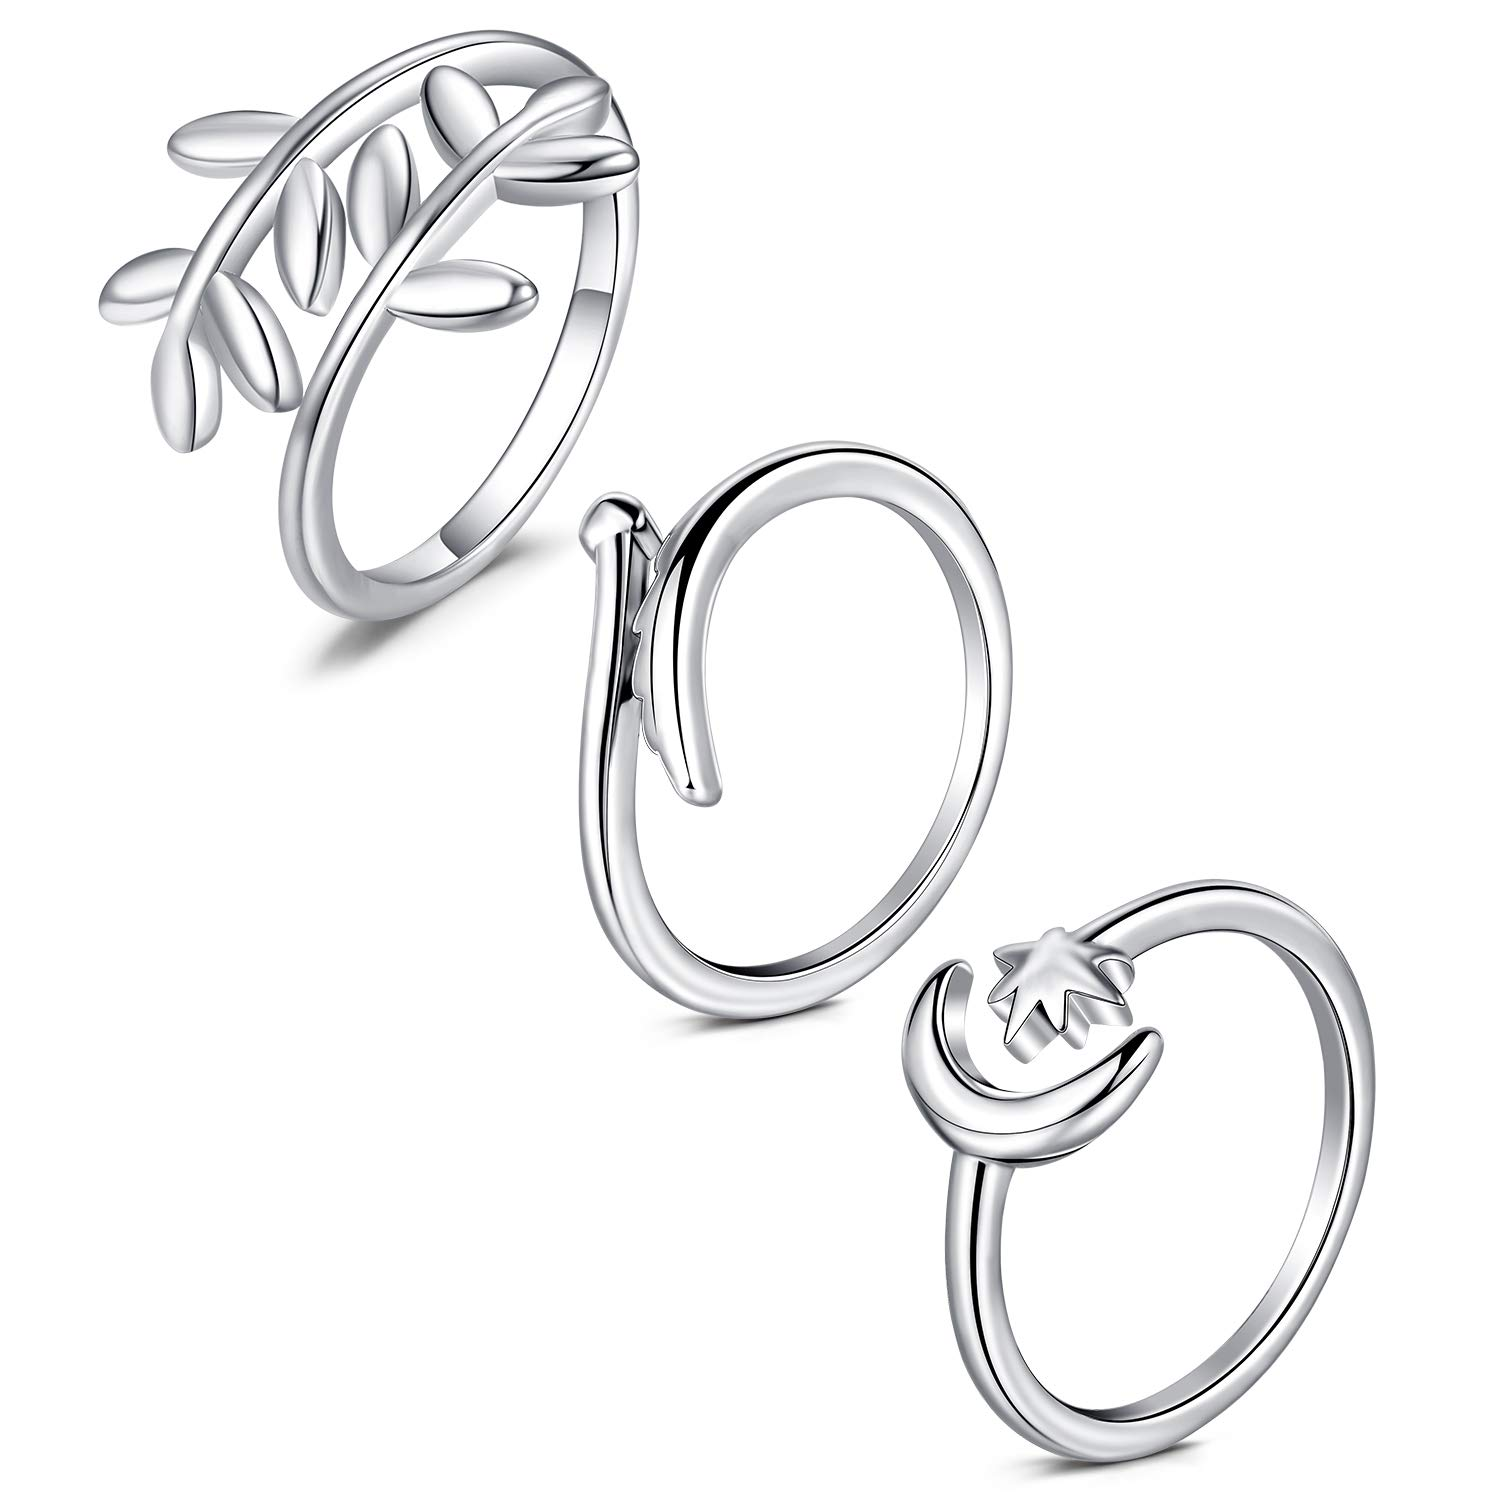 Anicina Silver Ring Open Band Toe Ring Star Moon Leaves Wing Band Open Tail Ring Set Summer Beach Jewelry Toe Finger Ring Comfort for Women Men Girls